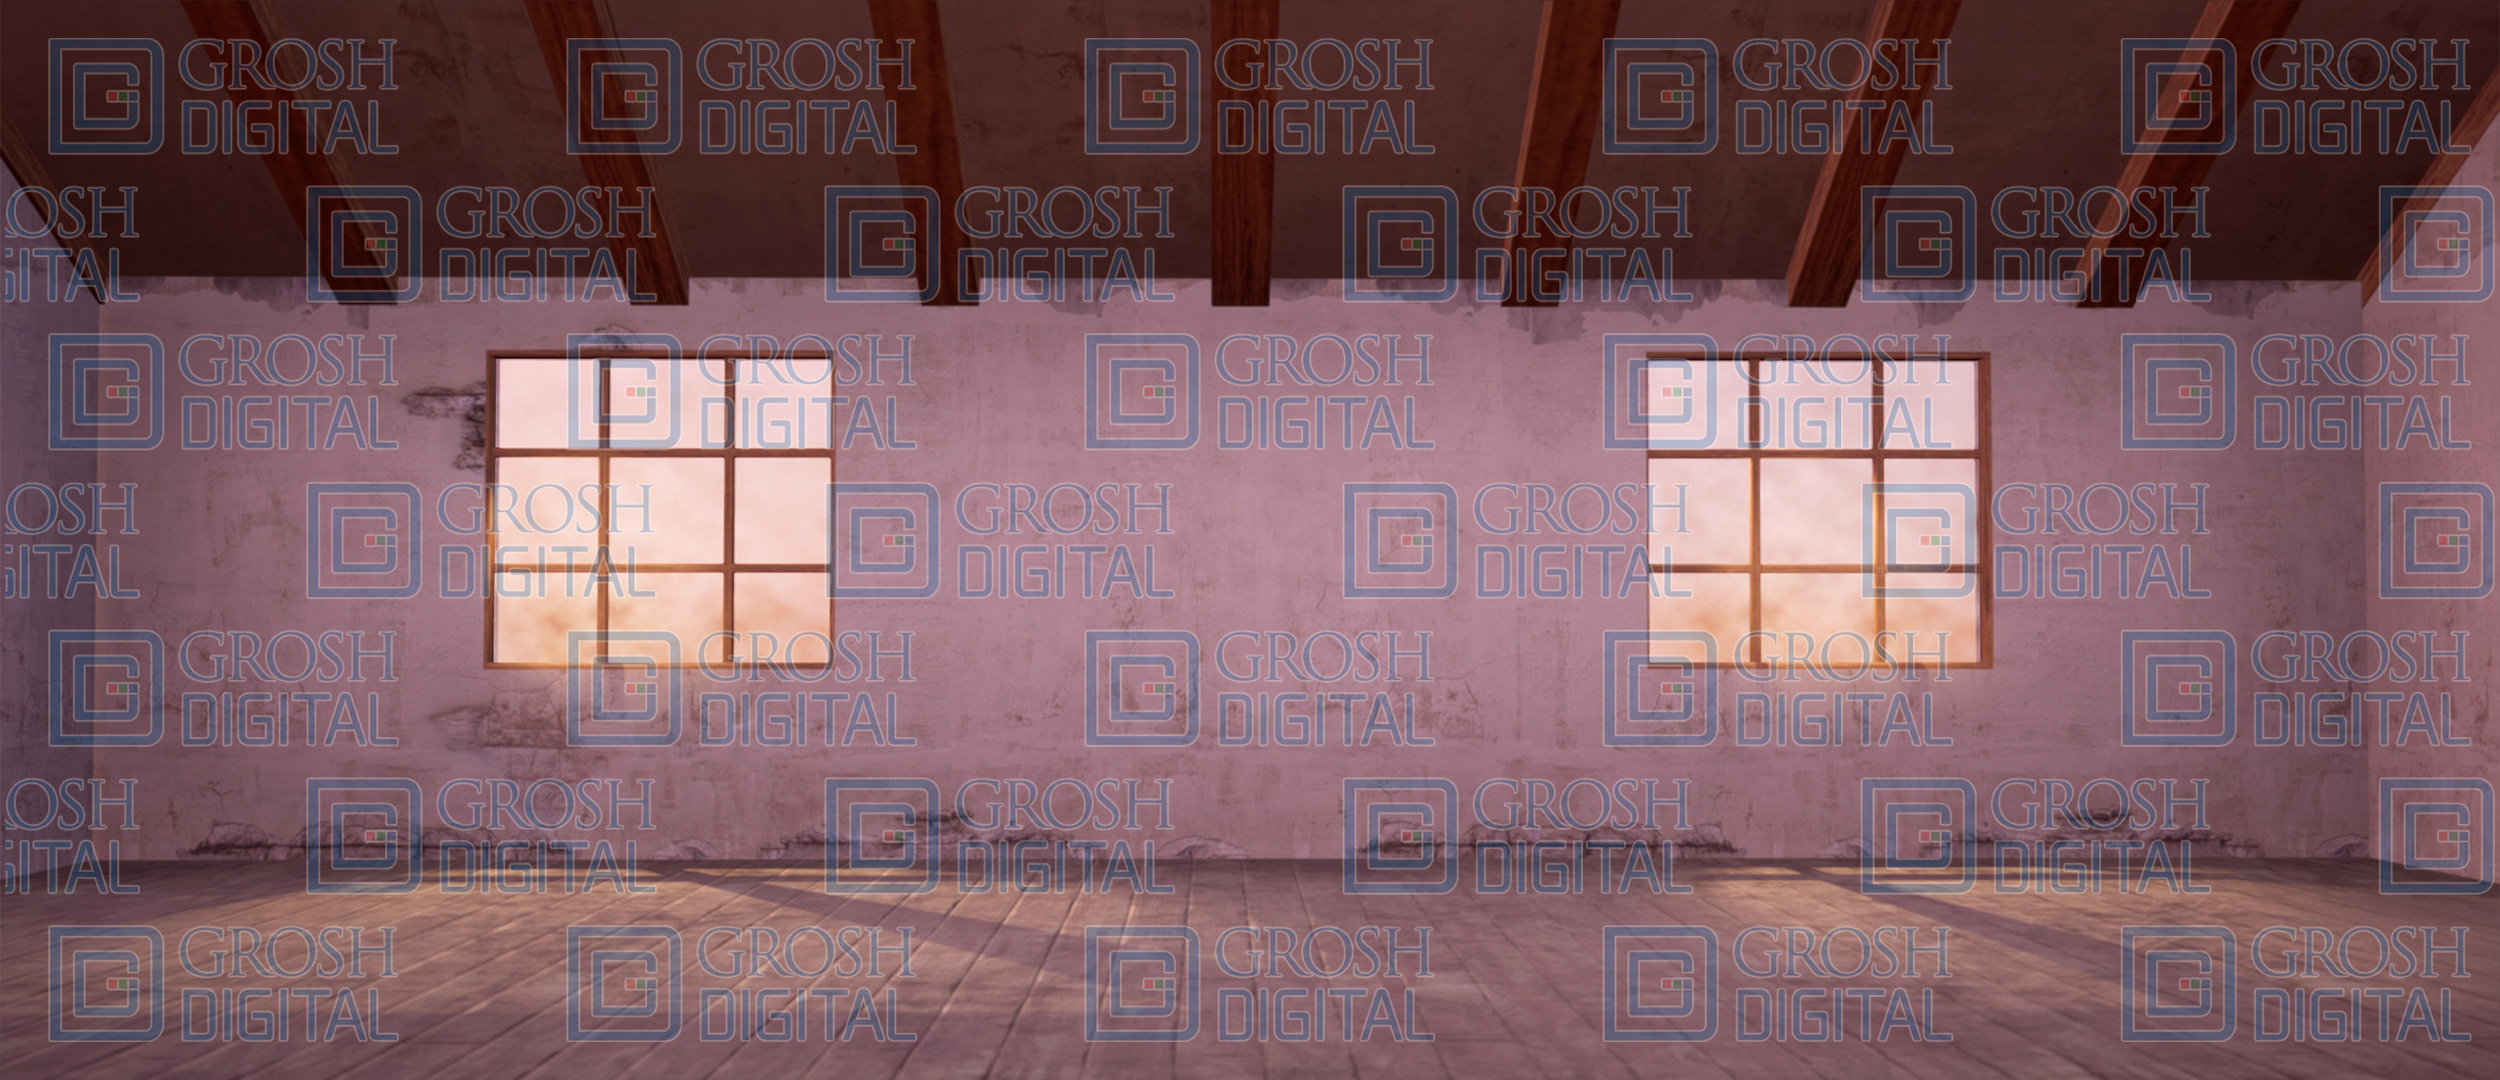 Orphanage Interior Projected Backdrop for Annie, Cinderella, Coppelia, Interiors, Newsies